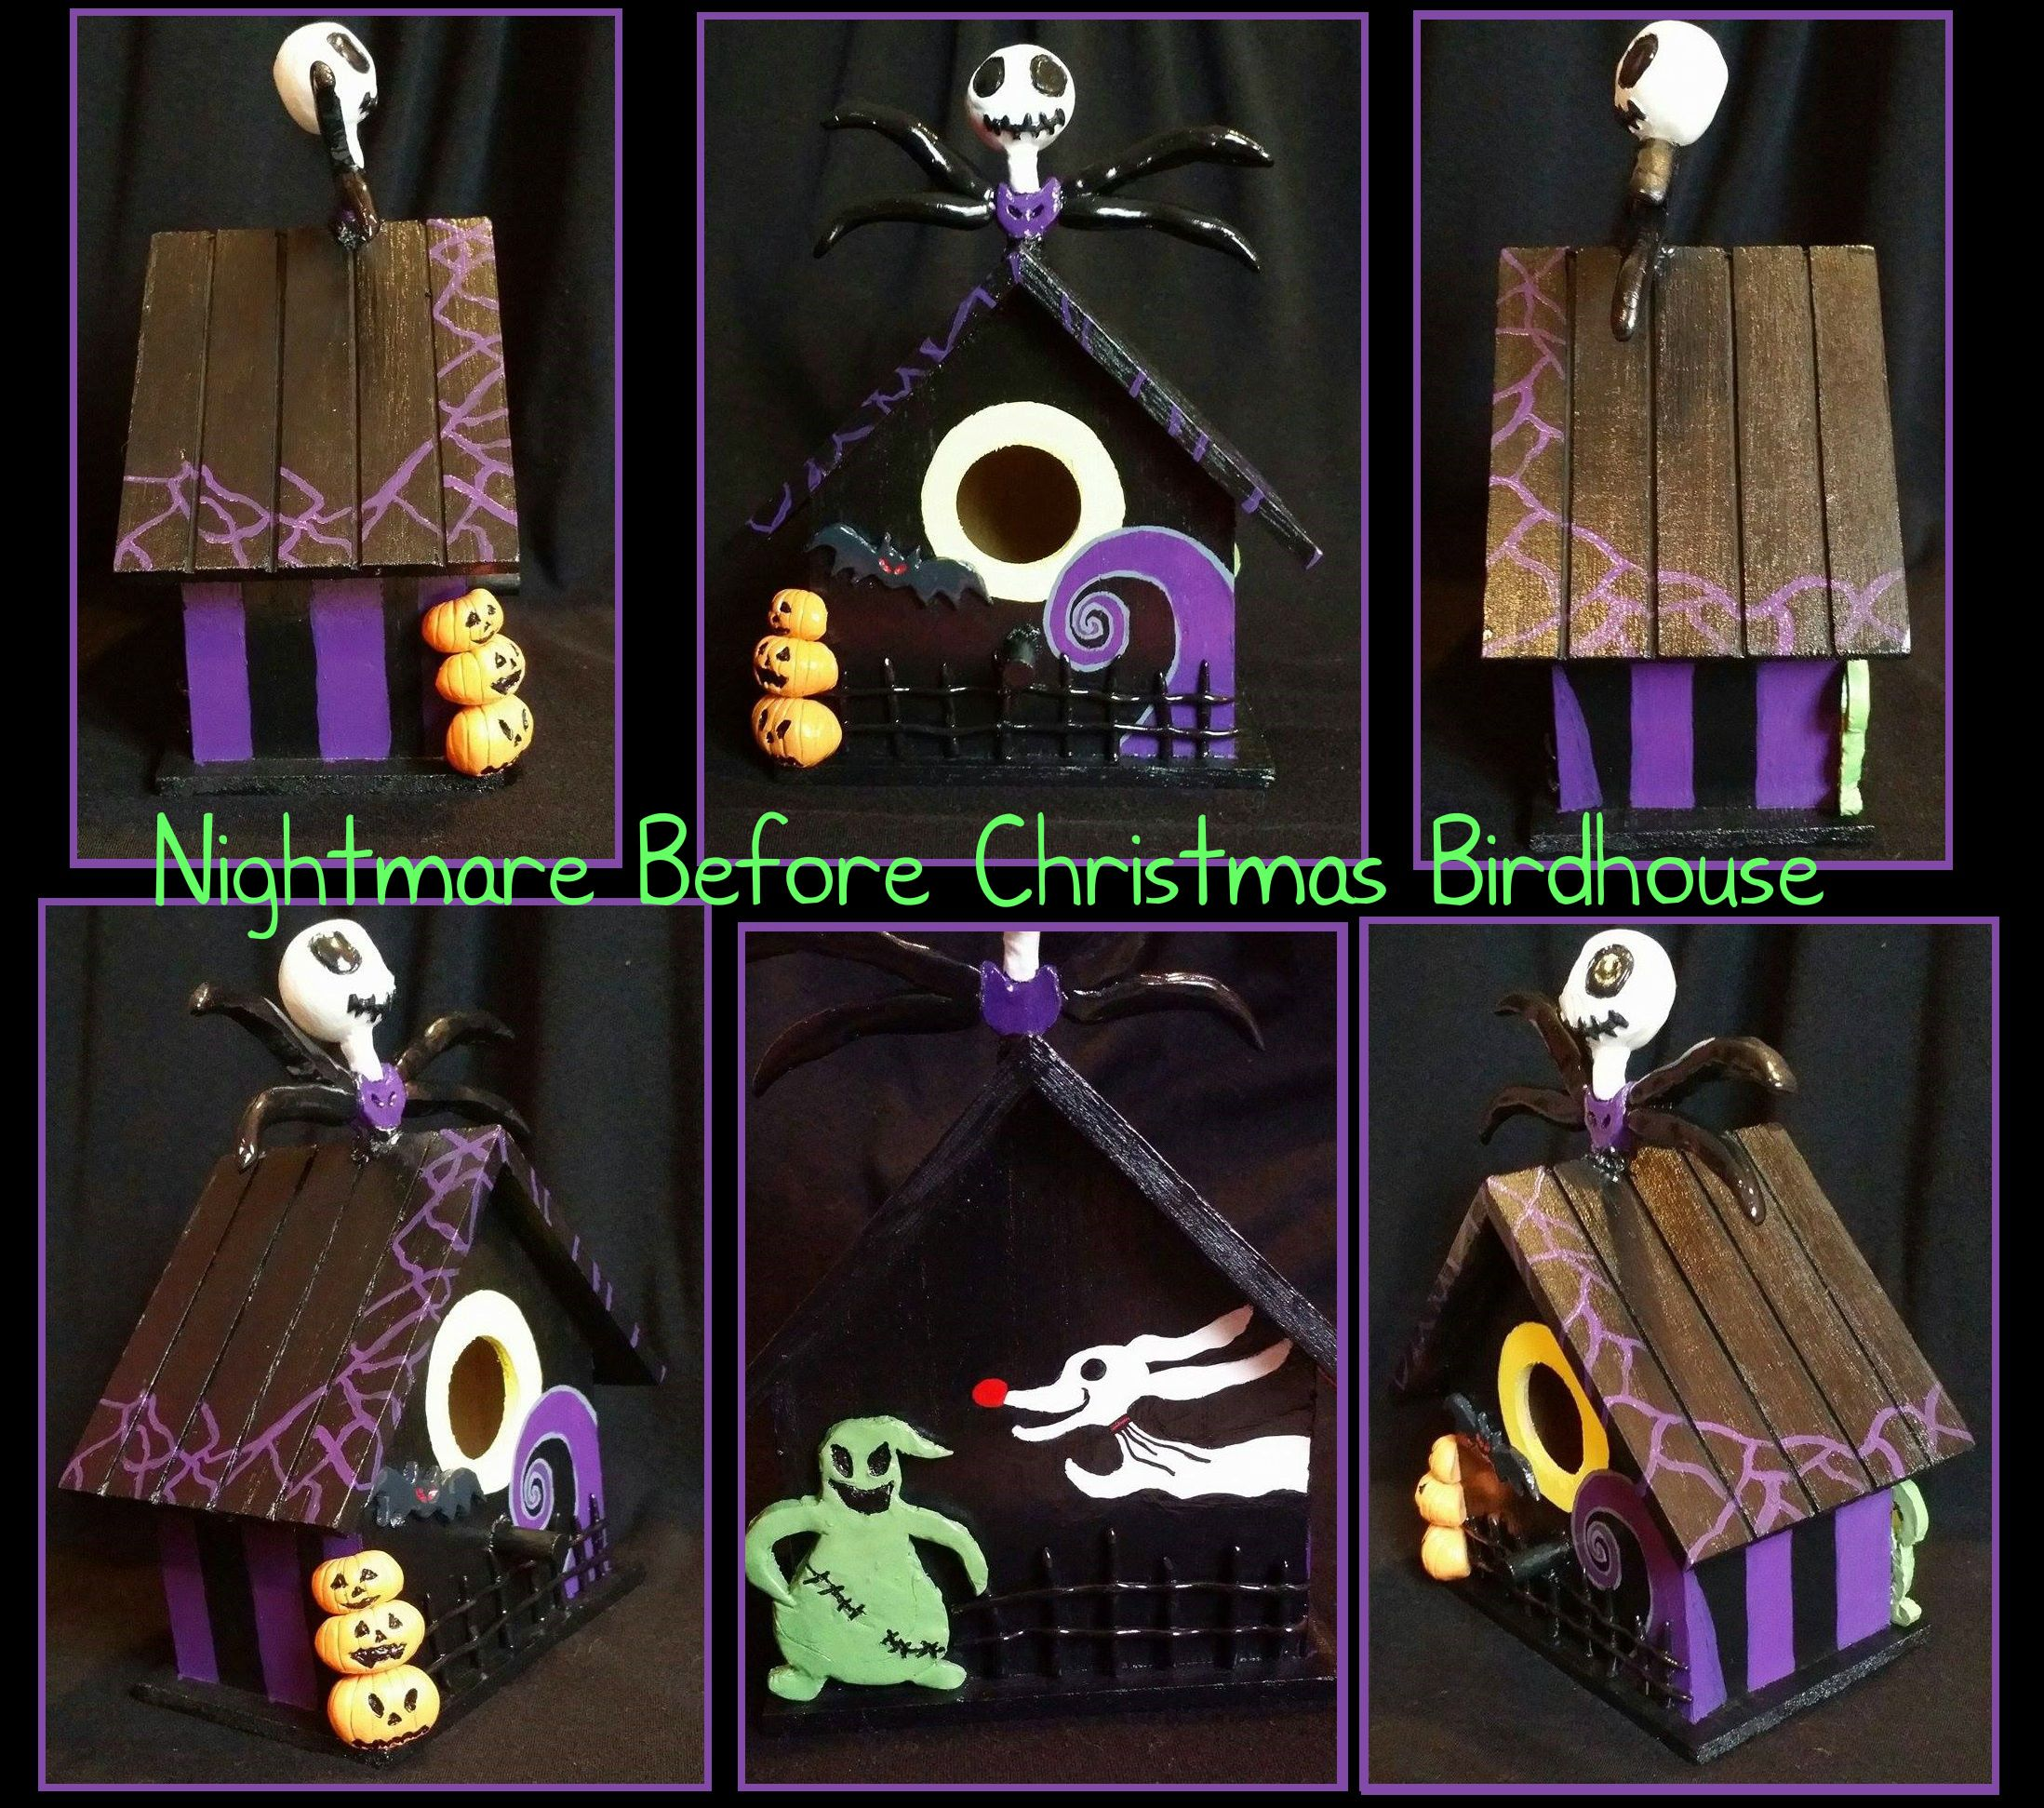 Nightmare Before Christmas Hand Painted Selling For 50$ Birdhouse All